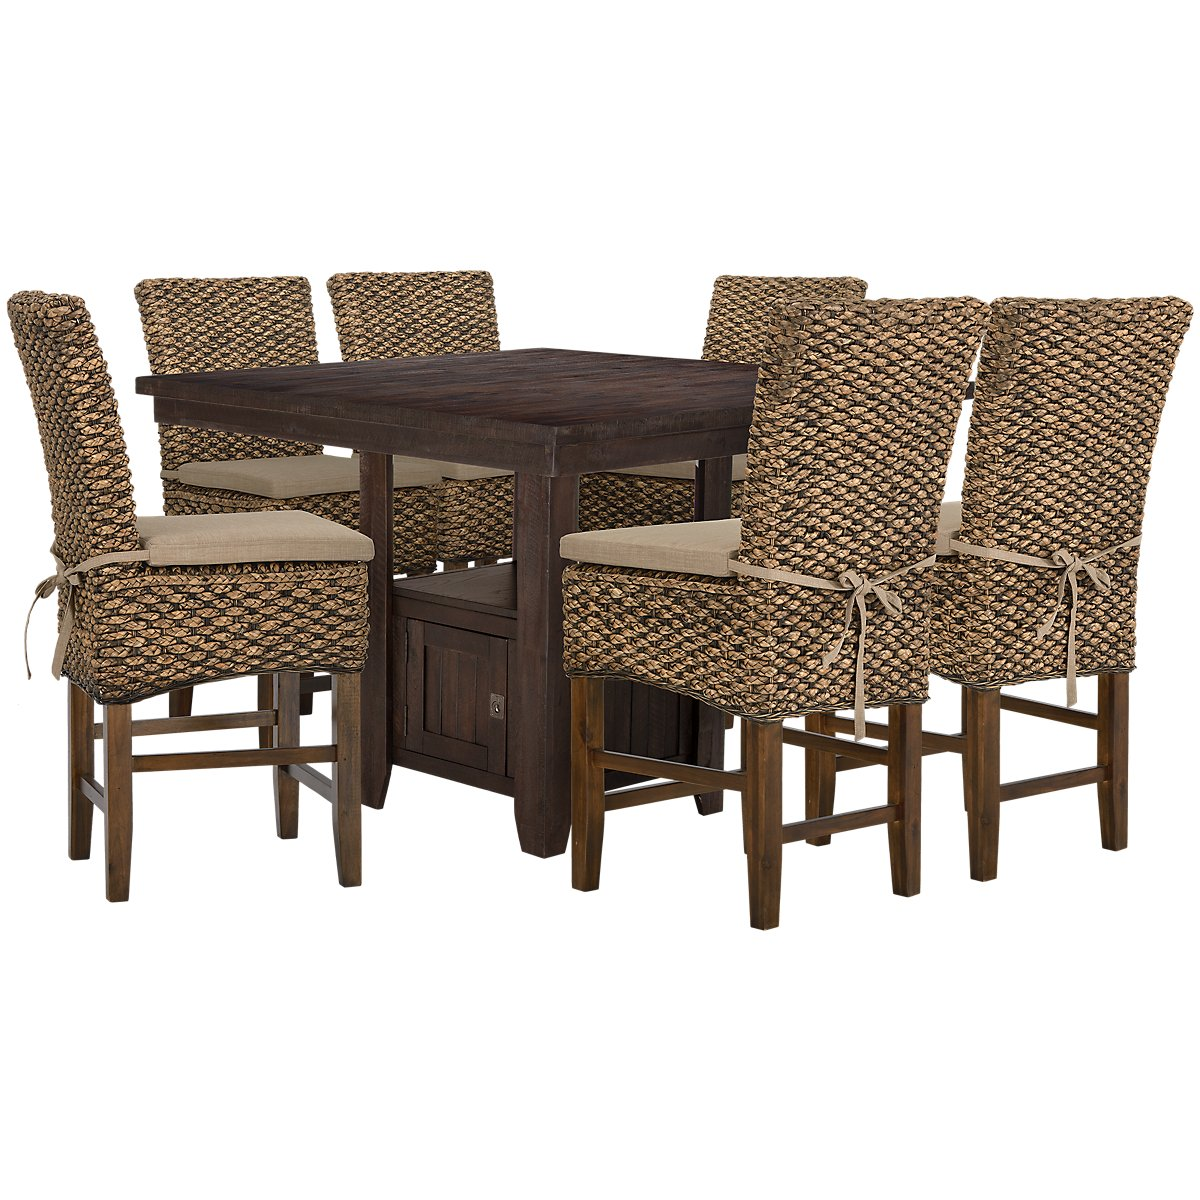 Kona Grove Dark Tone High Table & 4 Woven Barstools